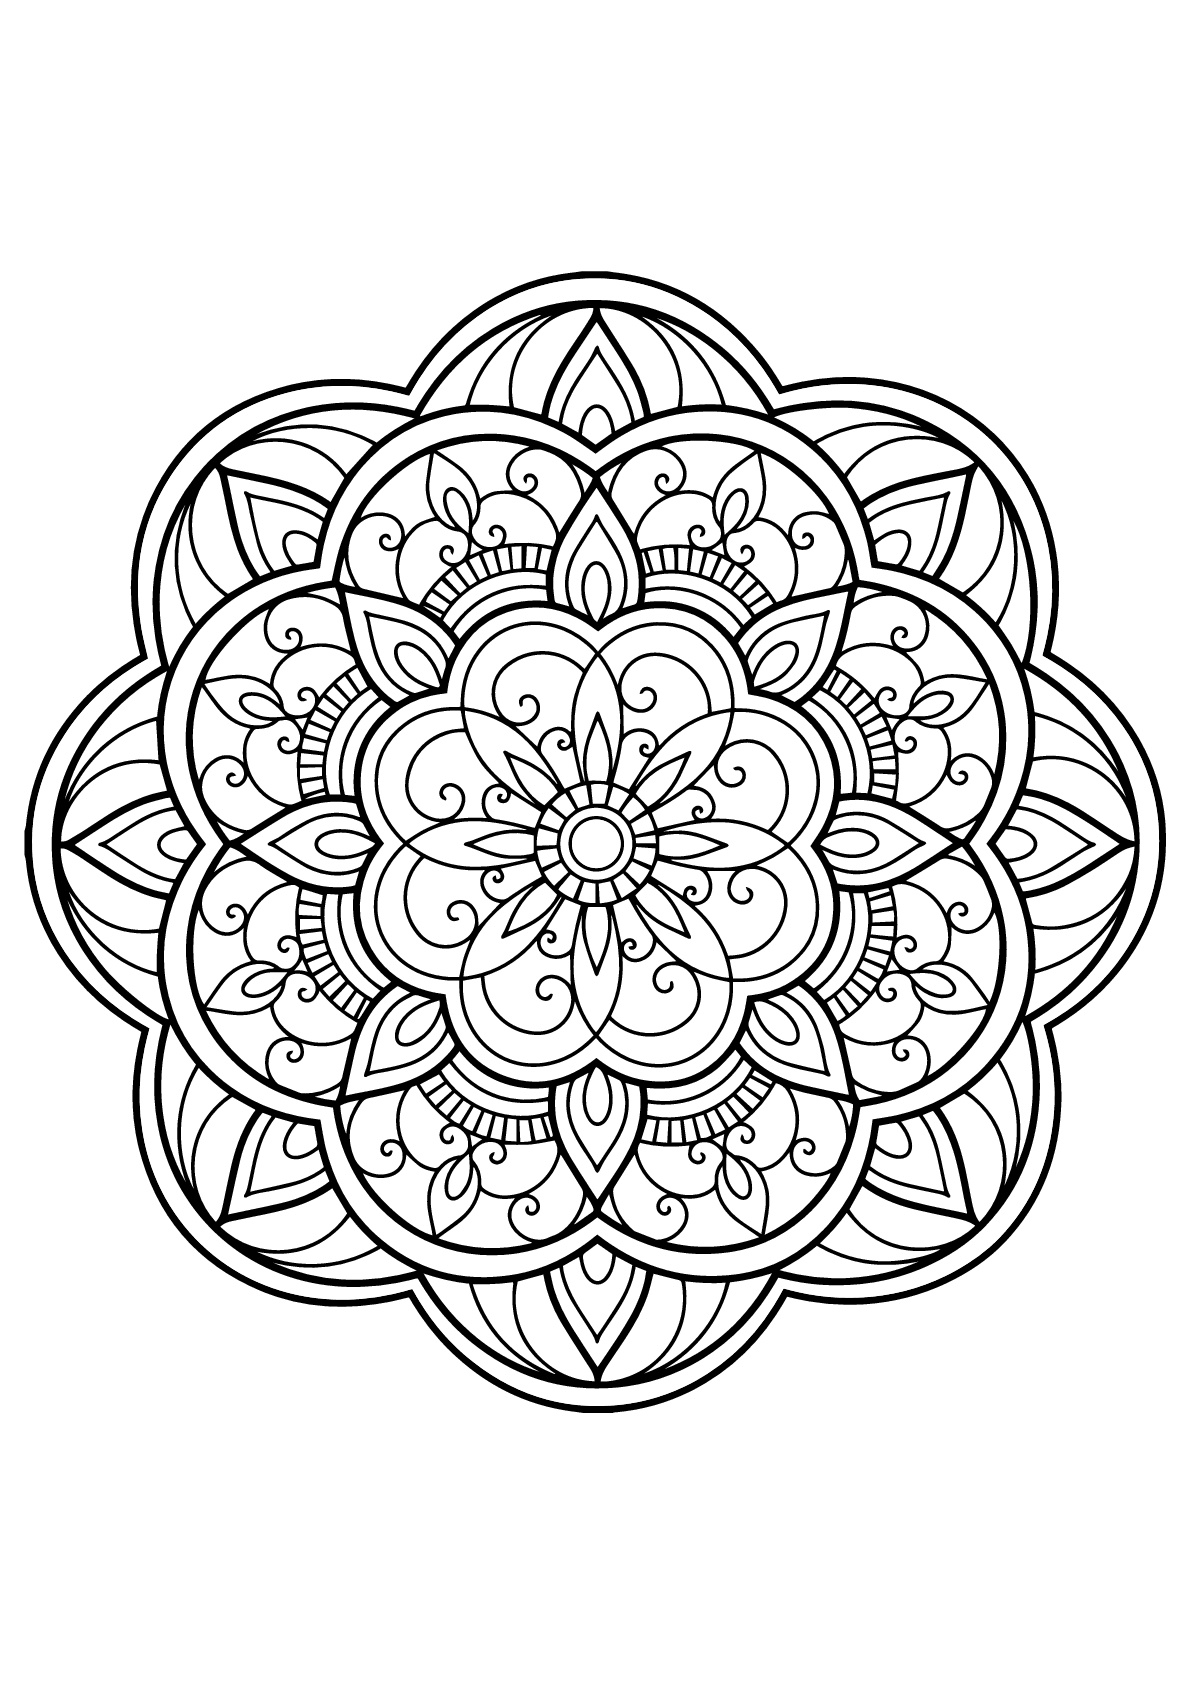 Mandala With Rounded Patterns From Free Coloring Book For Adults